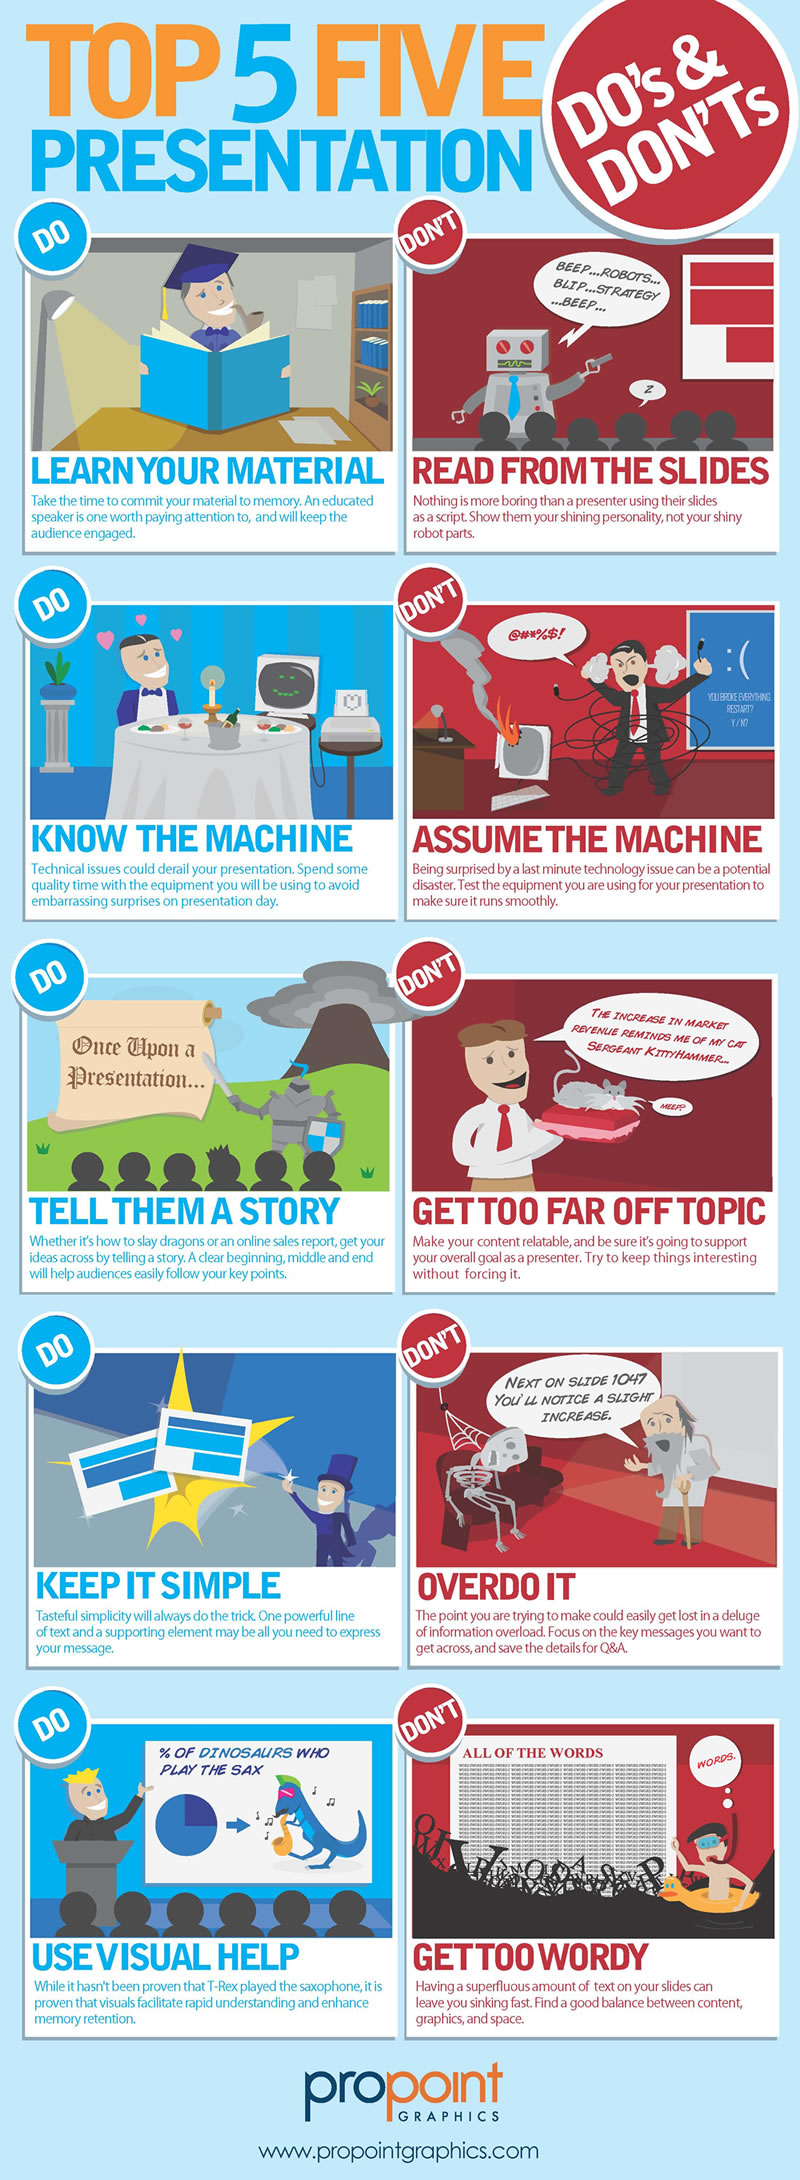 Presentation Skills Do's and Don'ts infographic